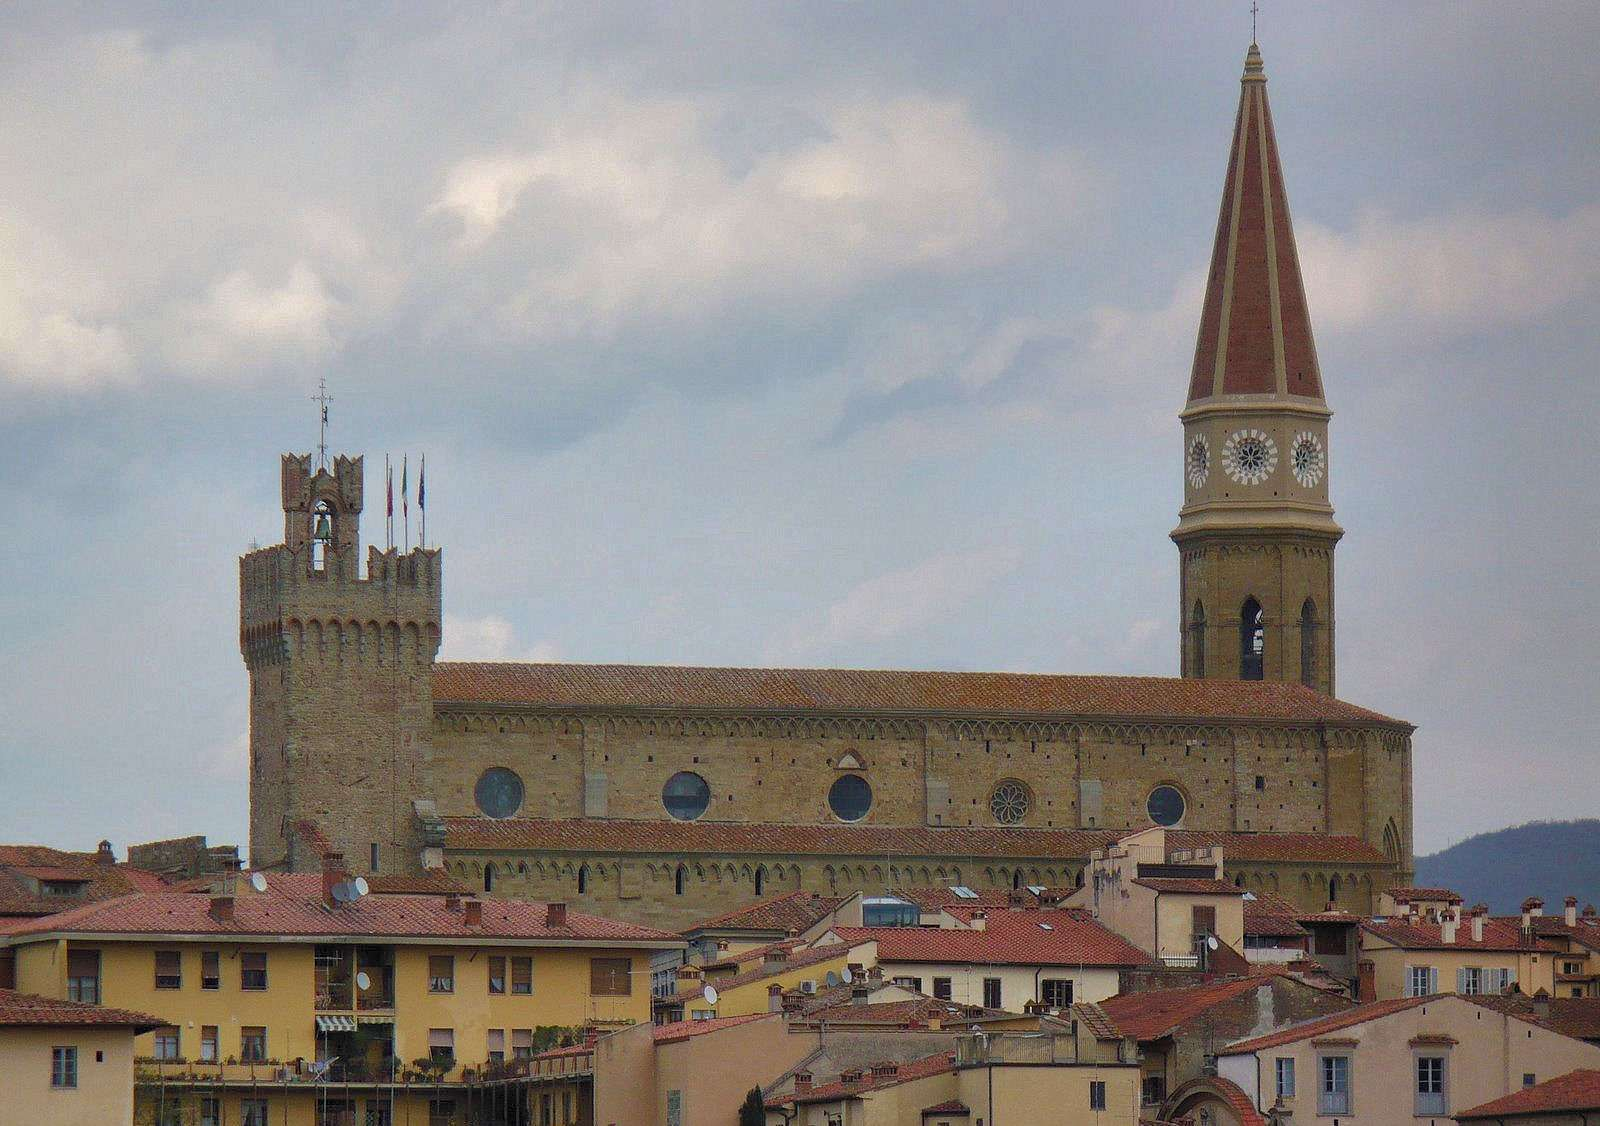 Die Kathedrale in Arezzo